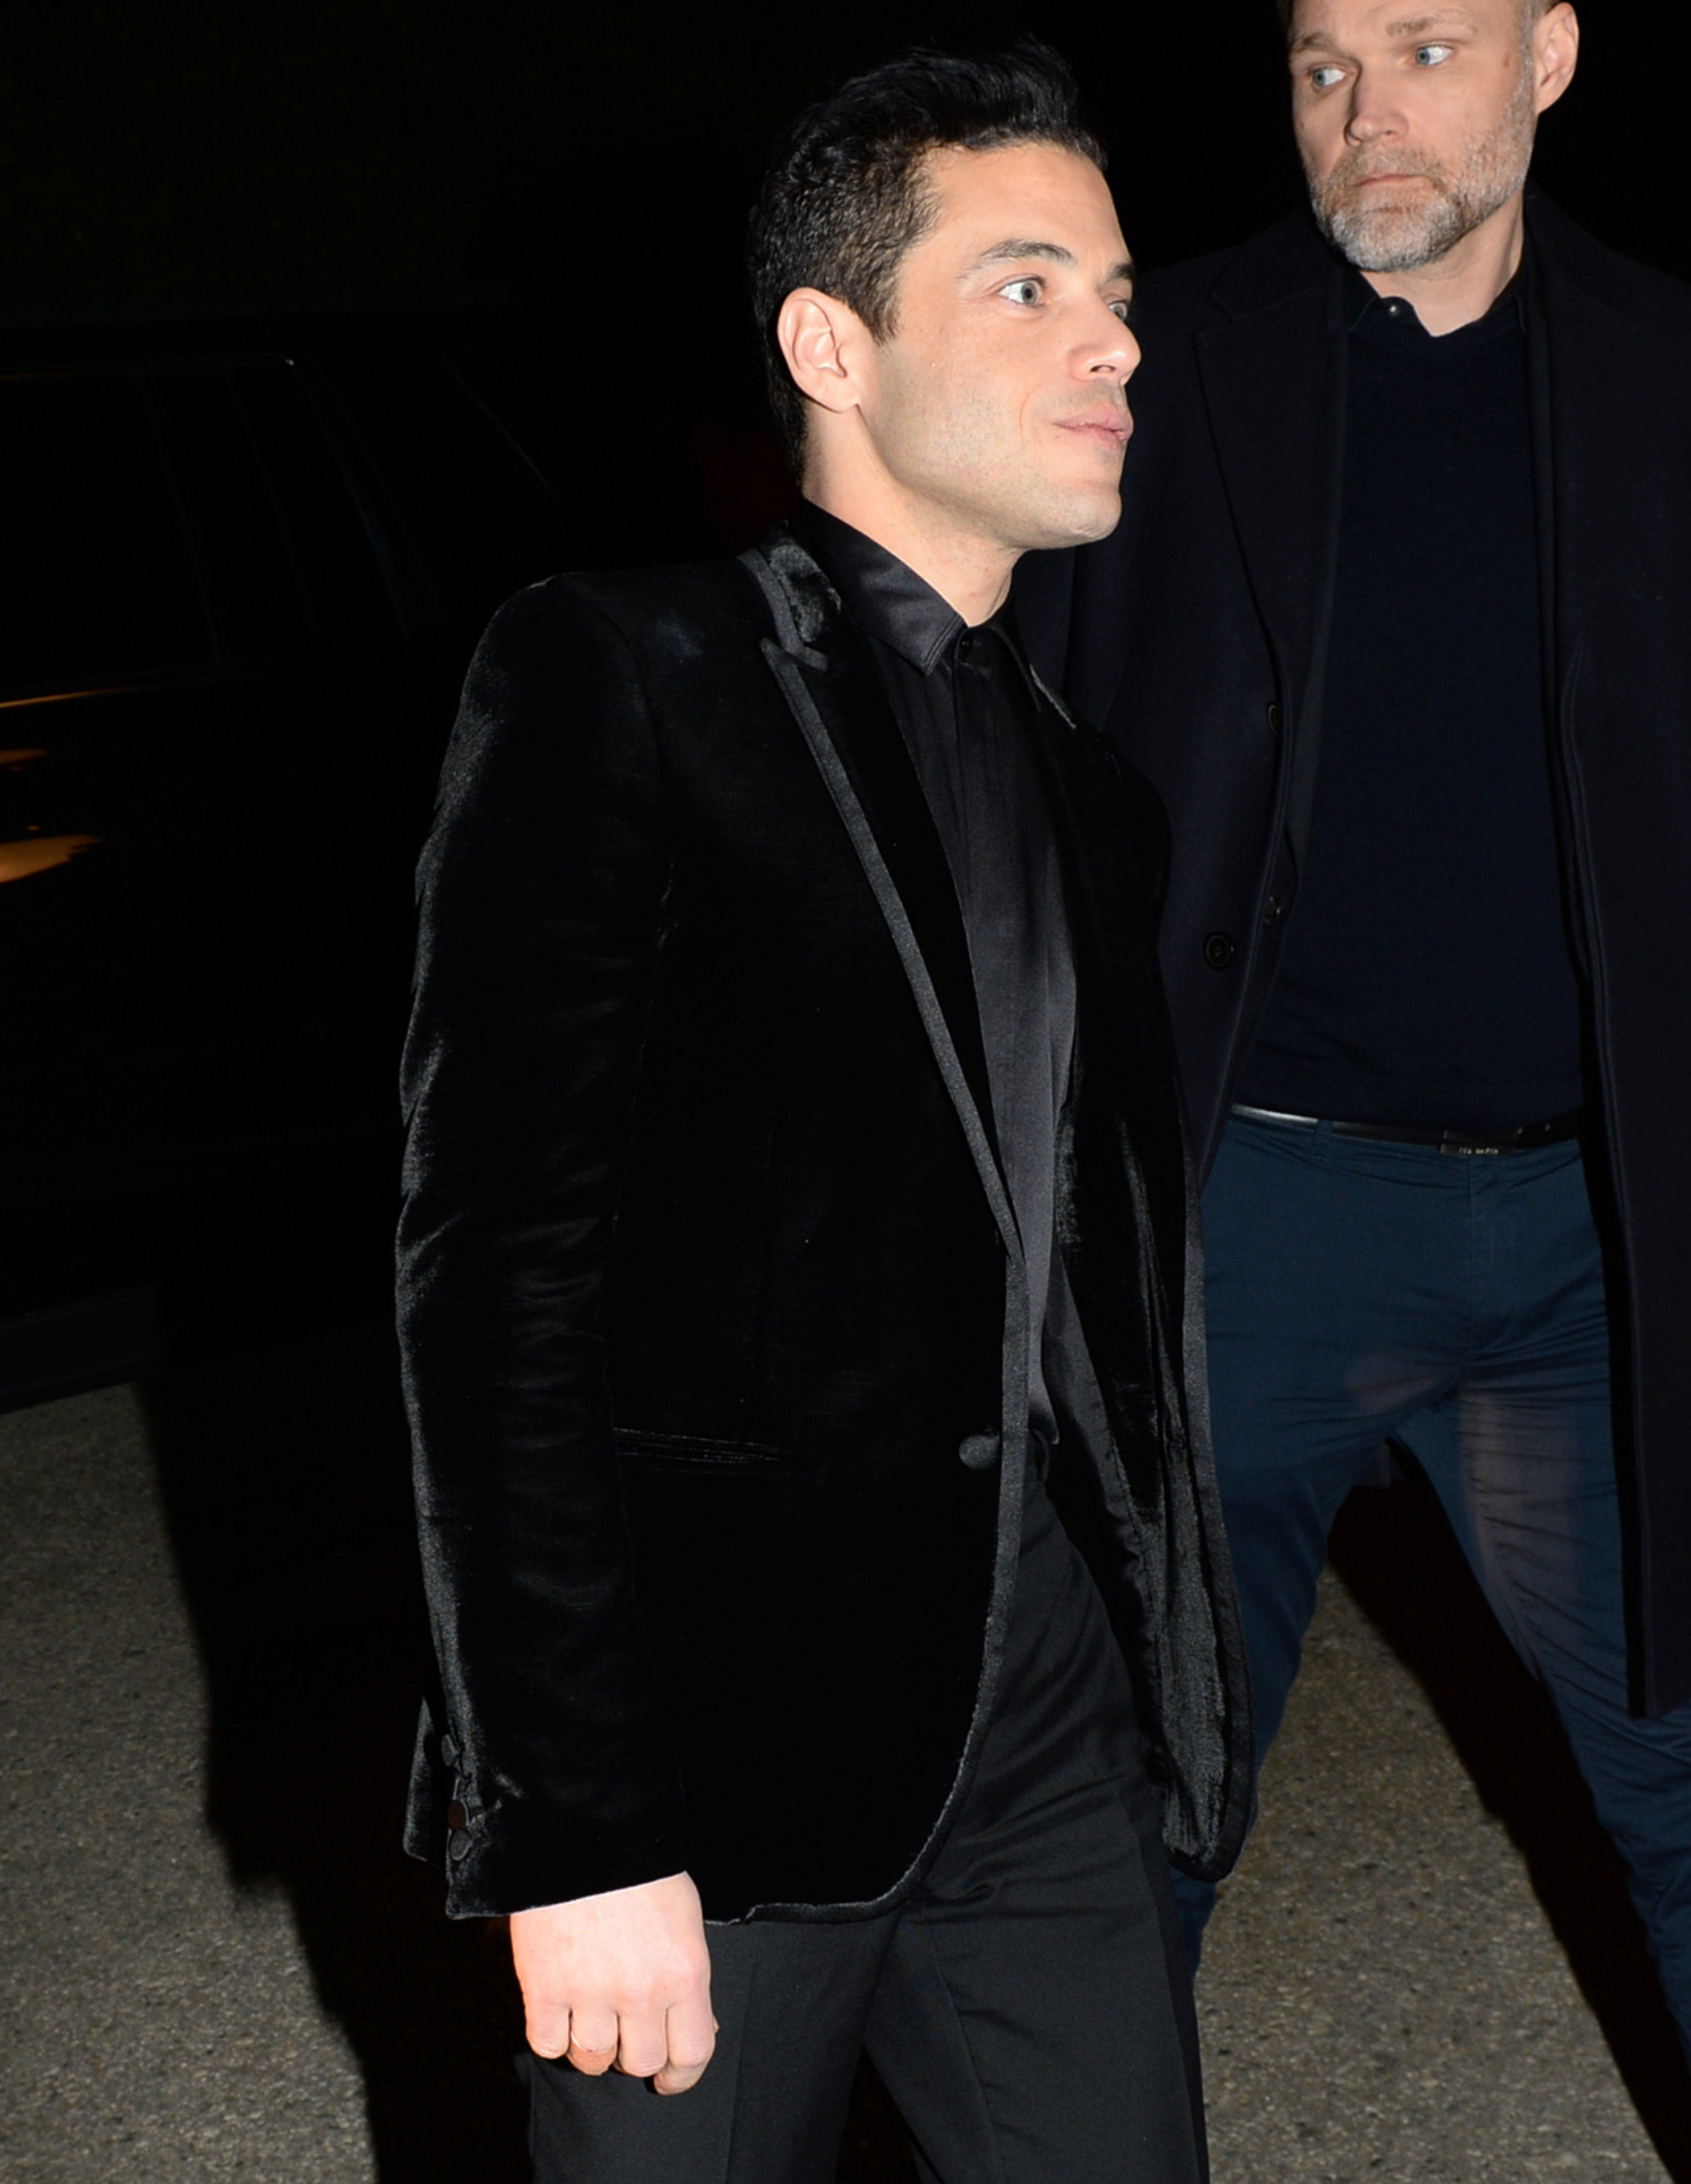 Rami Malek WME - The Oscar nominee also showed up for the WME party looking svelte as can be.